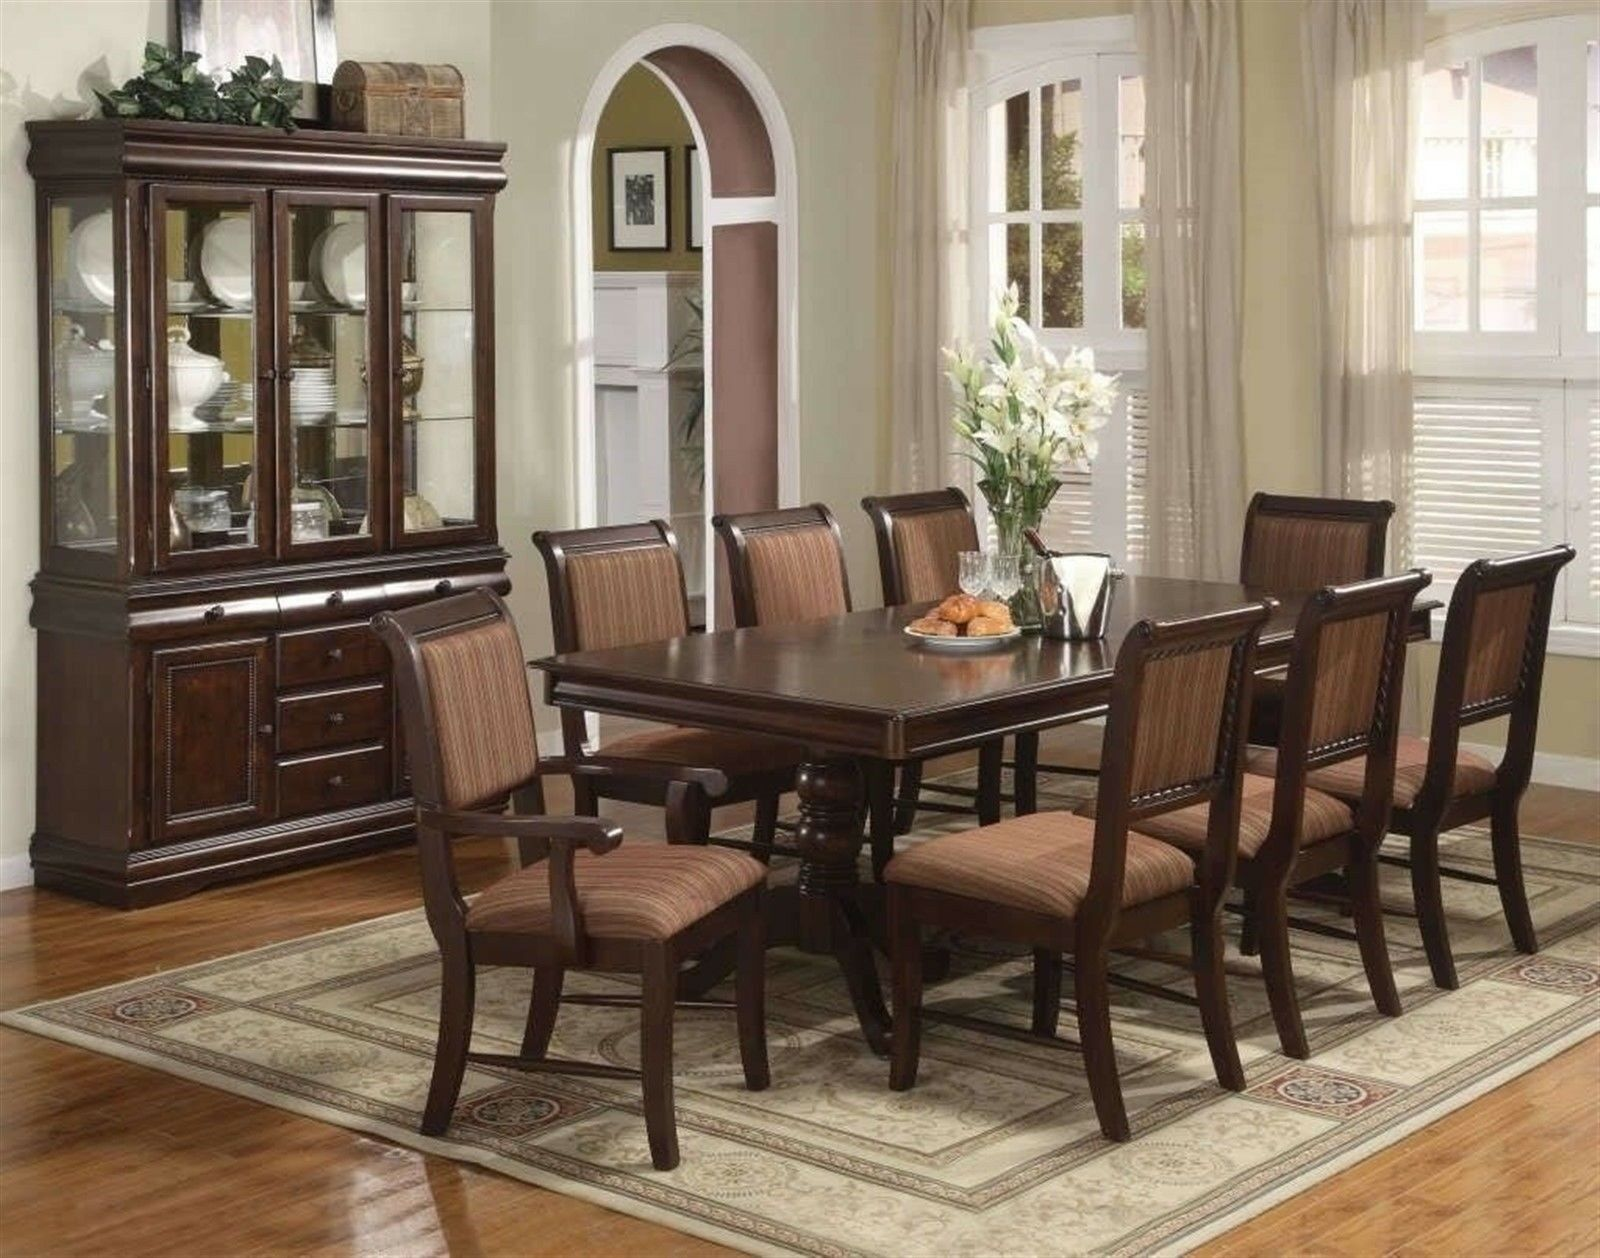 Merlot 9 Piece Formal Dining Room Furniture Set Pedestal Table 8 Chairs Ebay